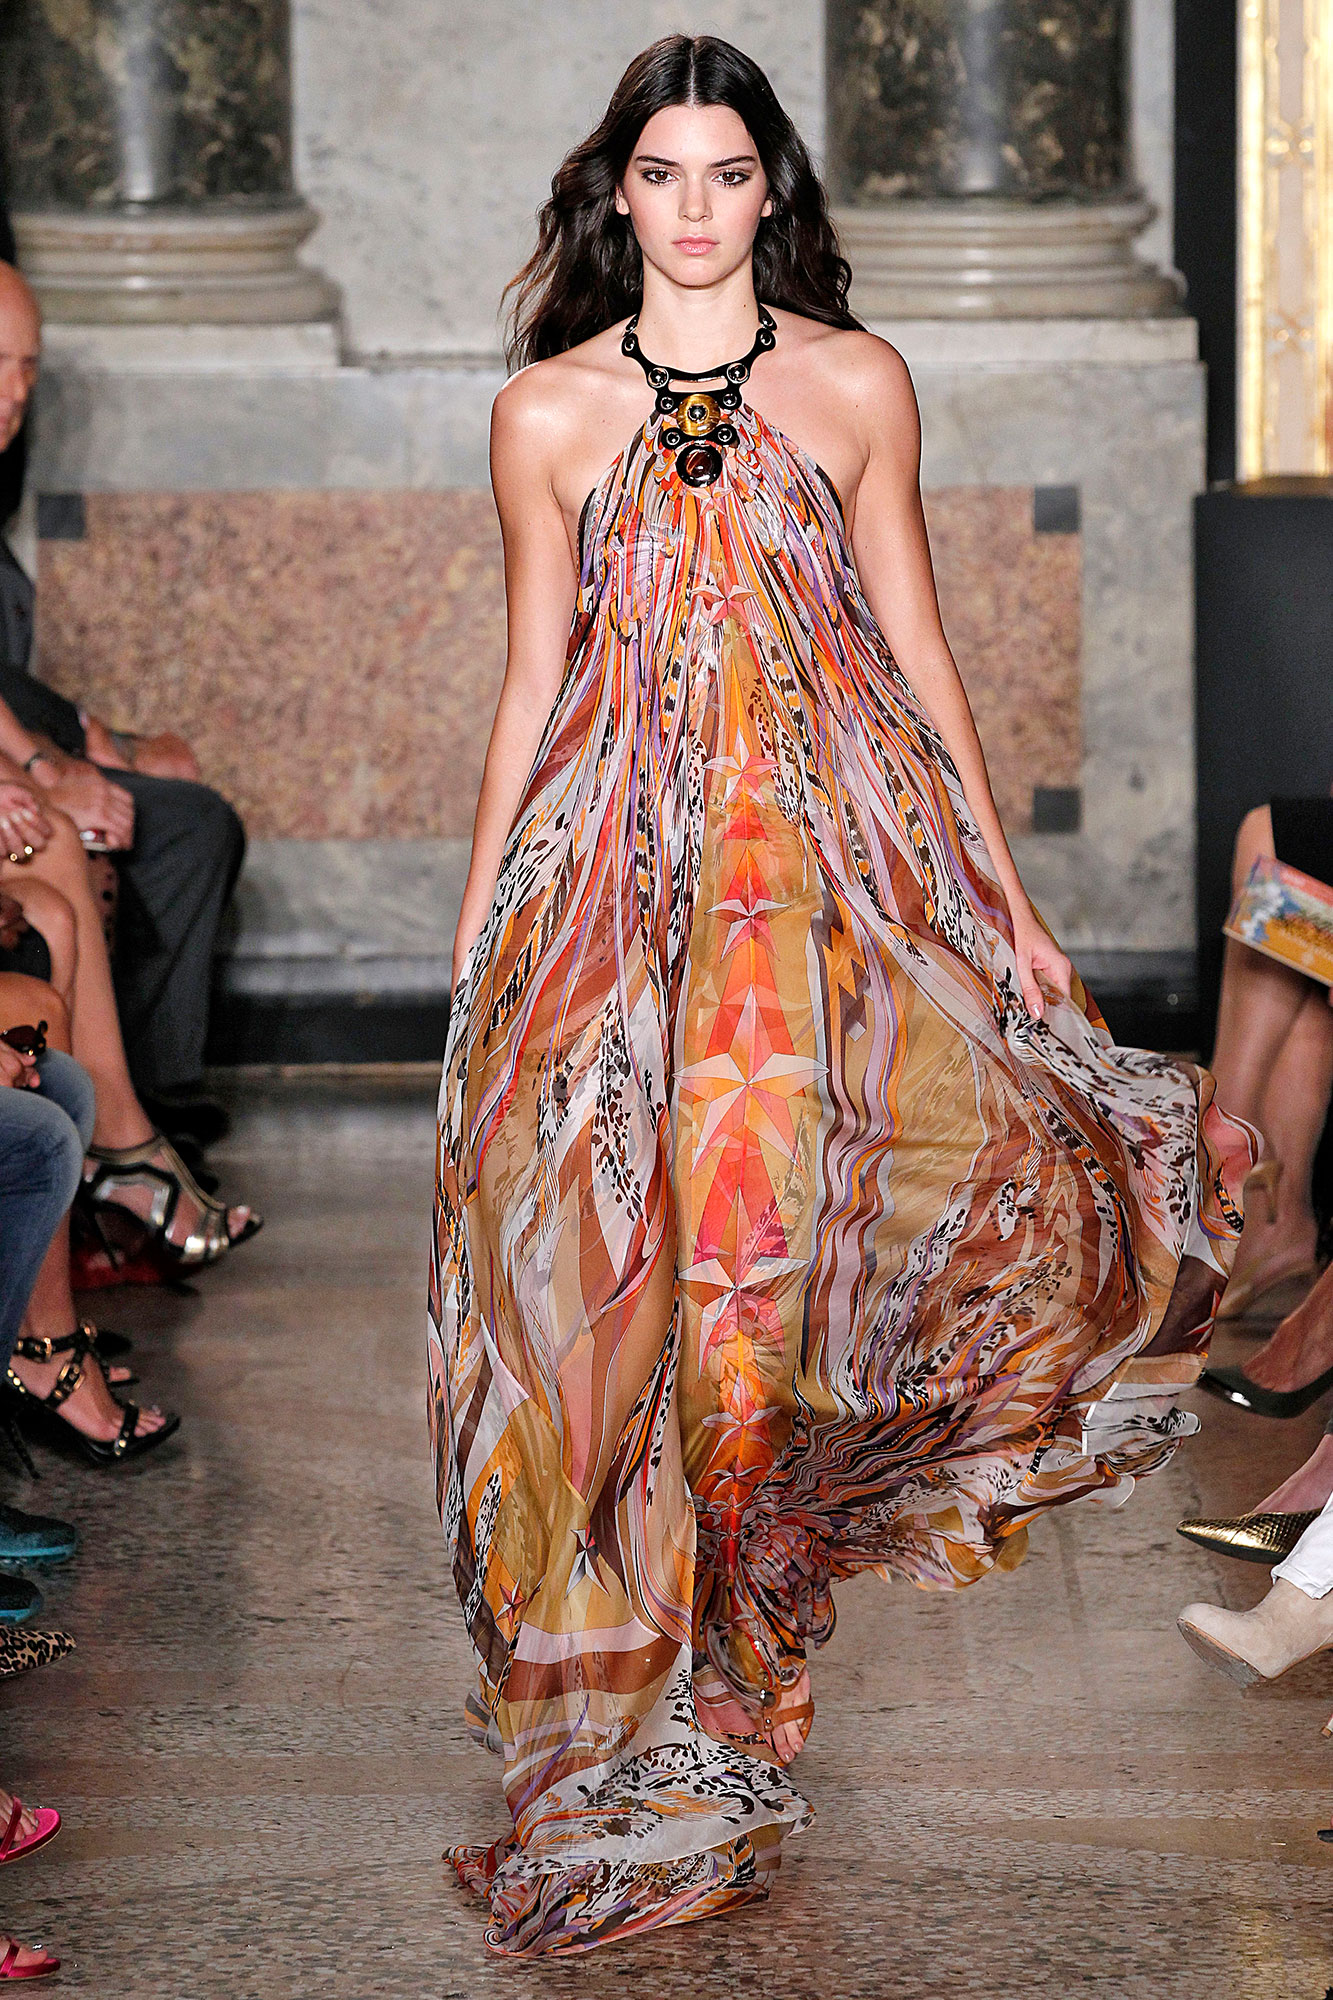 Kendall Jenner through the years - Kendall wowed the Milan Fashion Week crowd in 2014 as she modeled this flowing Pucci dress.